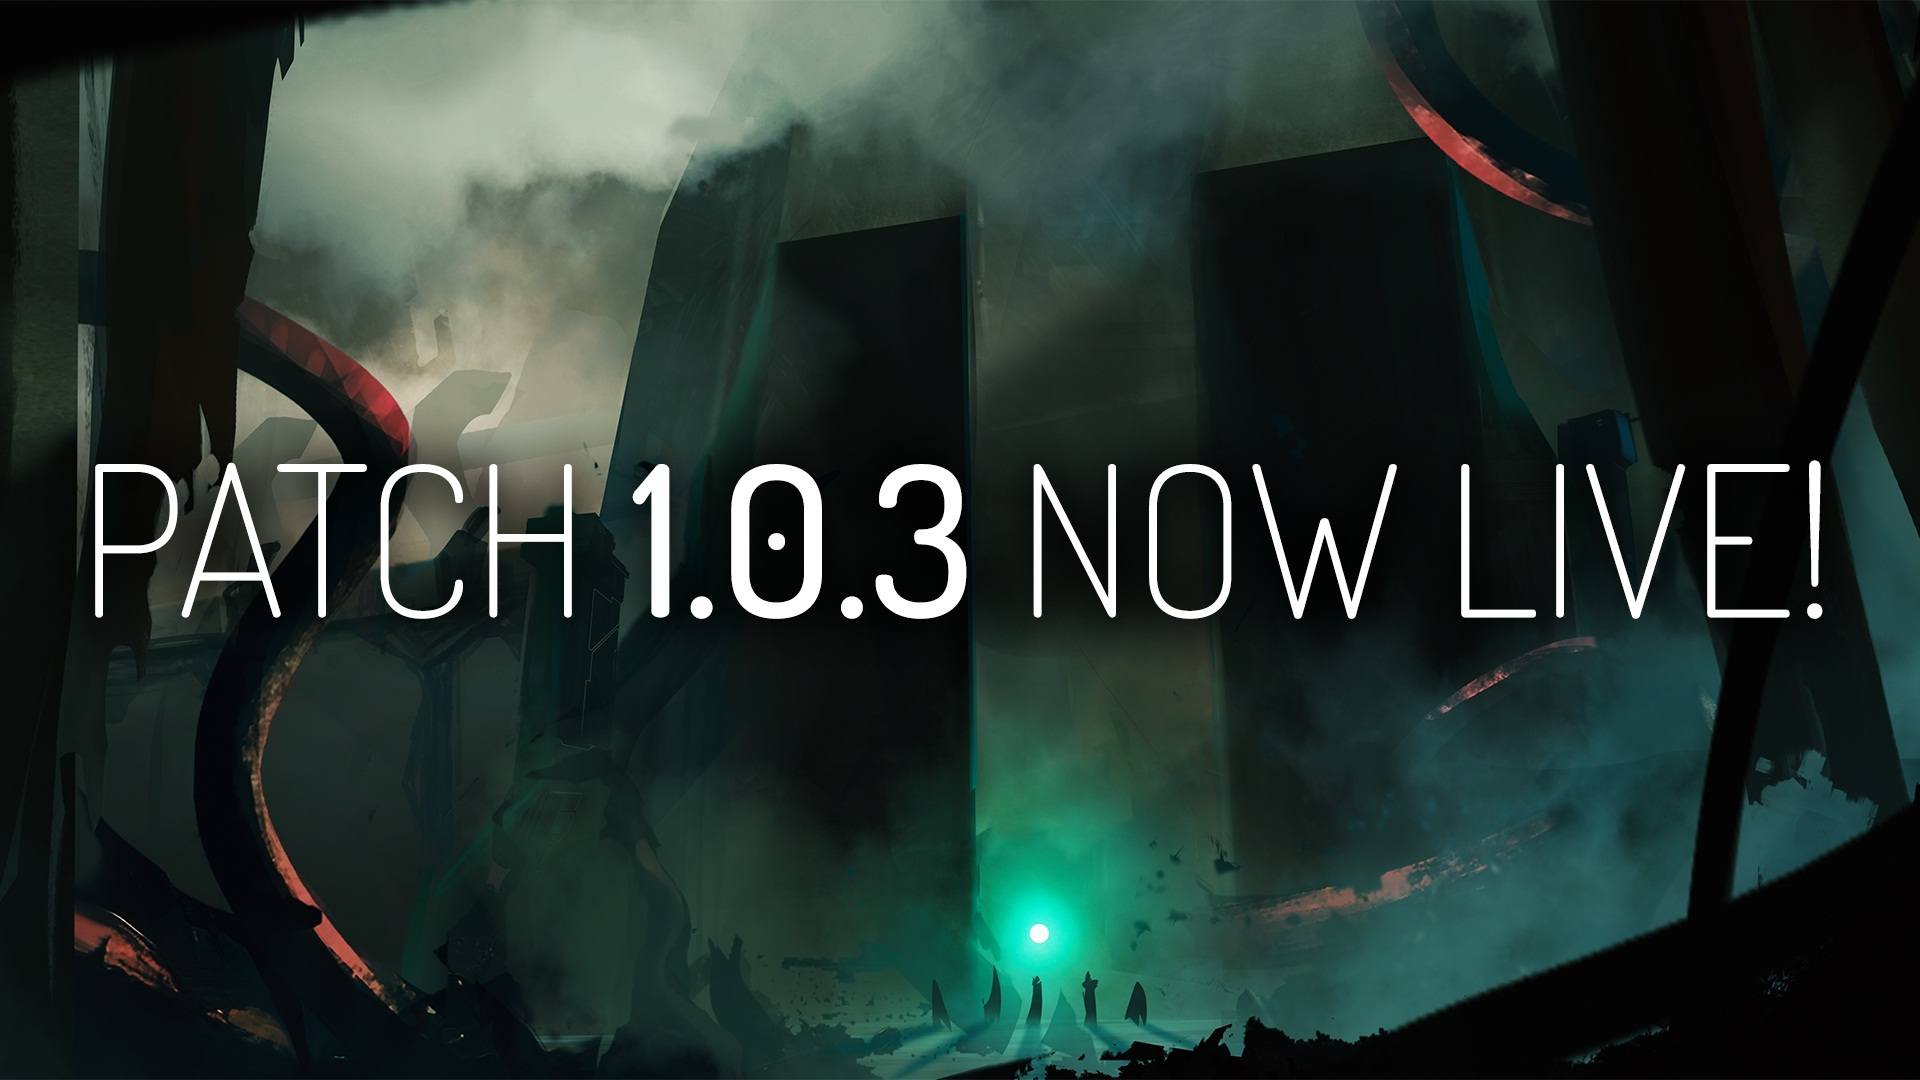 Dec 6, 2017 Patch 1 0 4 is live! Seven: Enhanced Edition